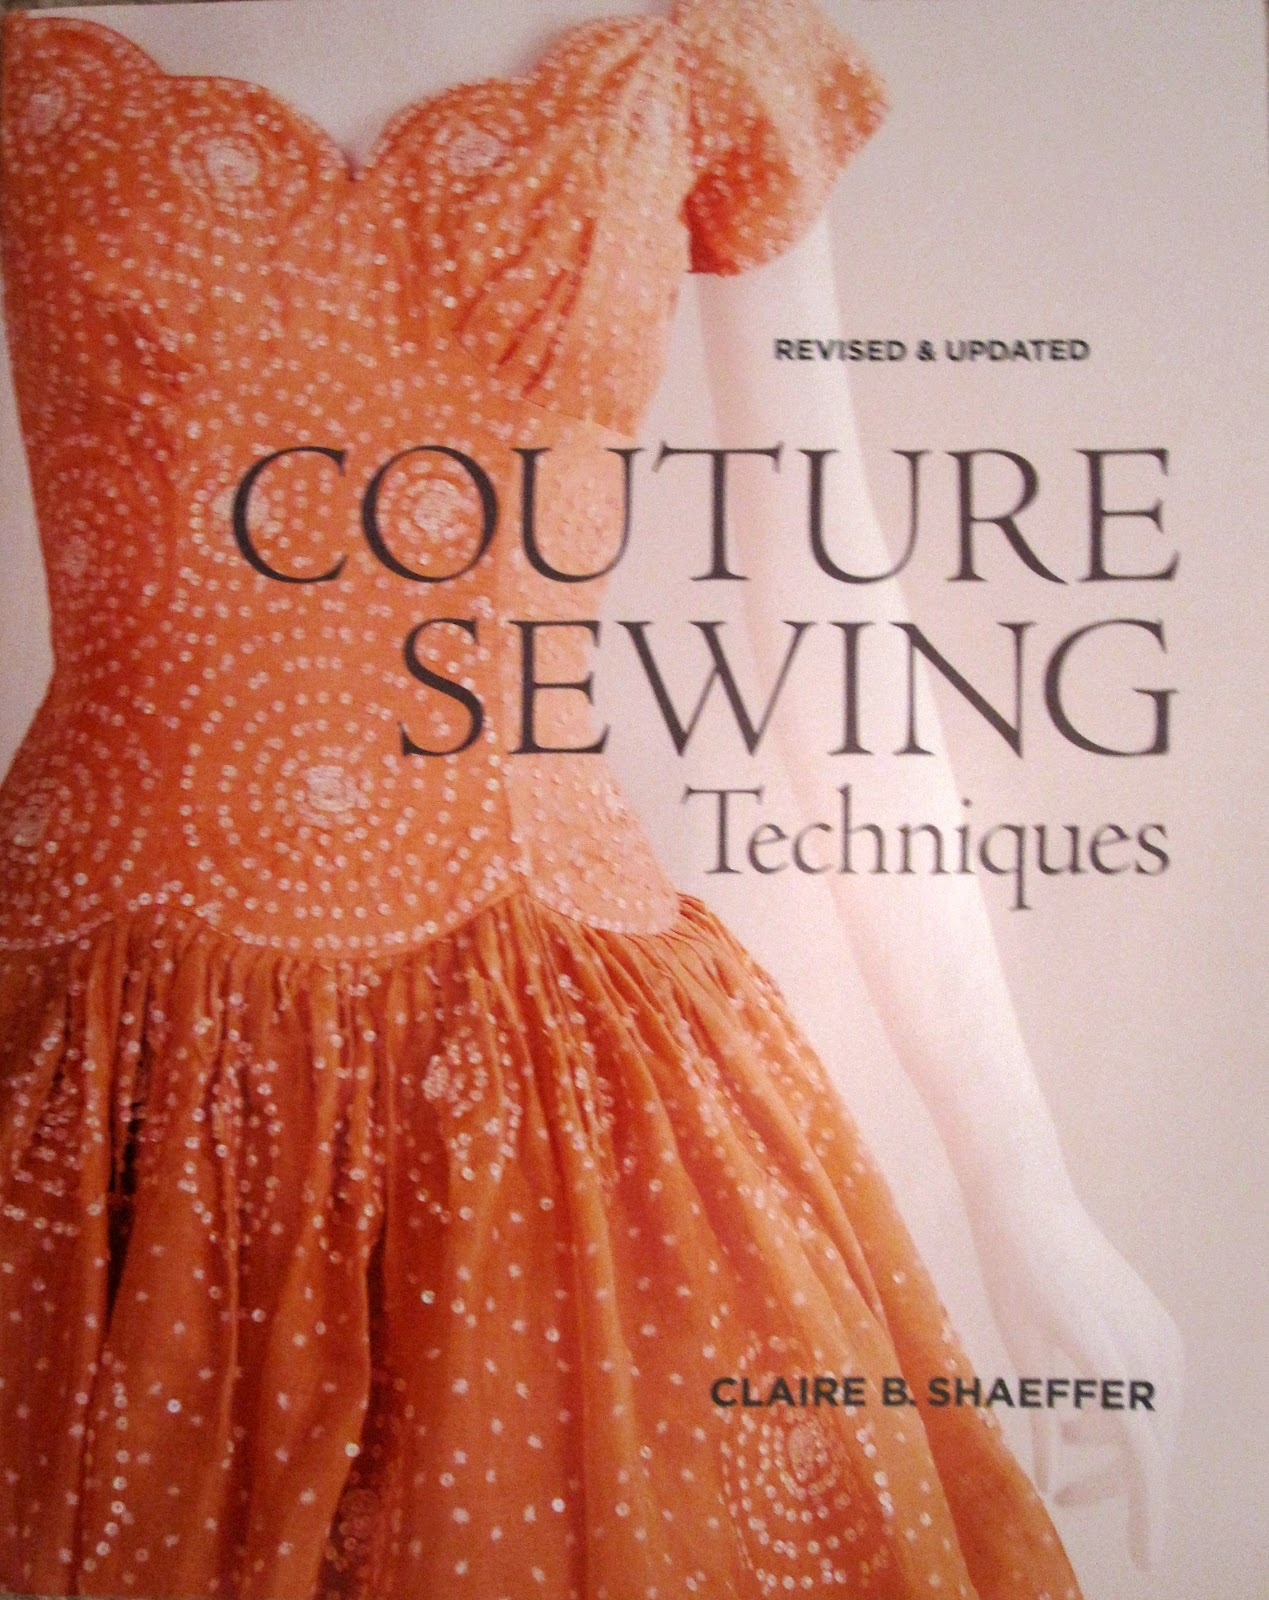 Queen of darts book review couture sewing techniques and